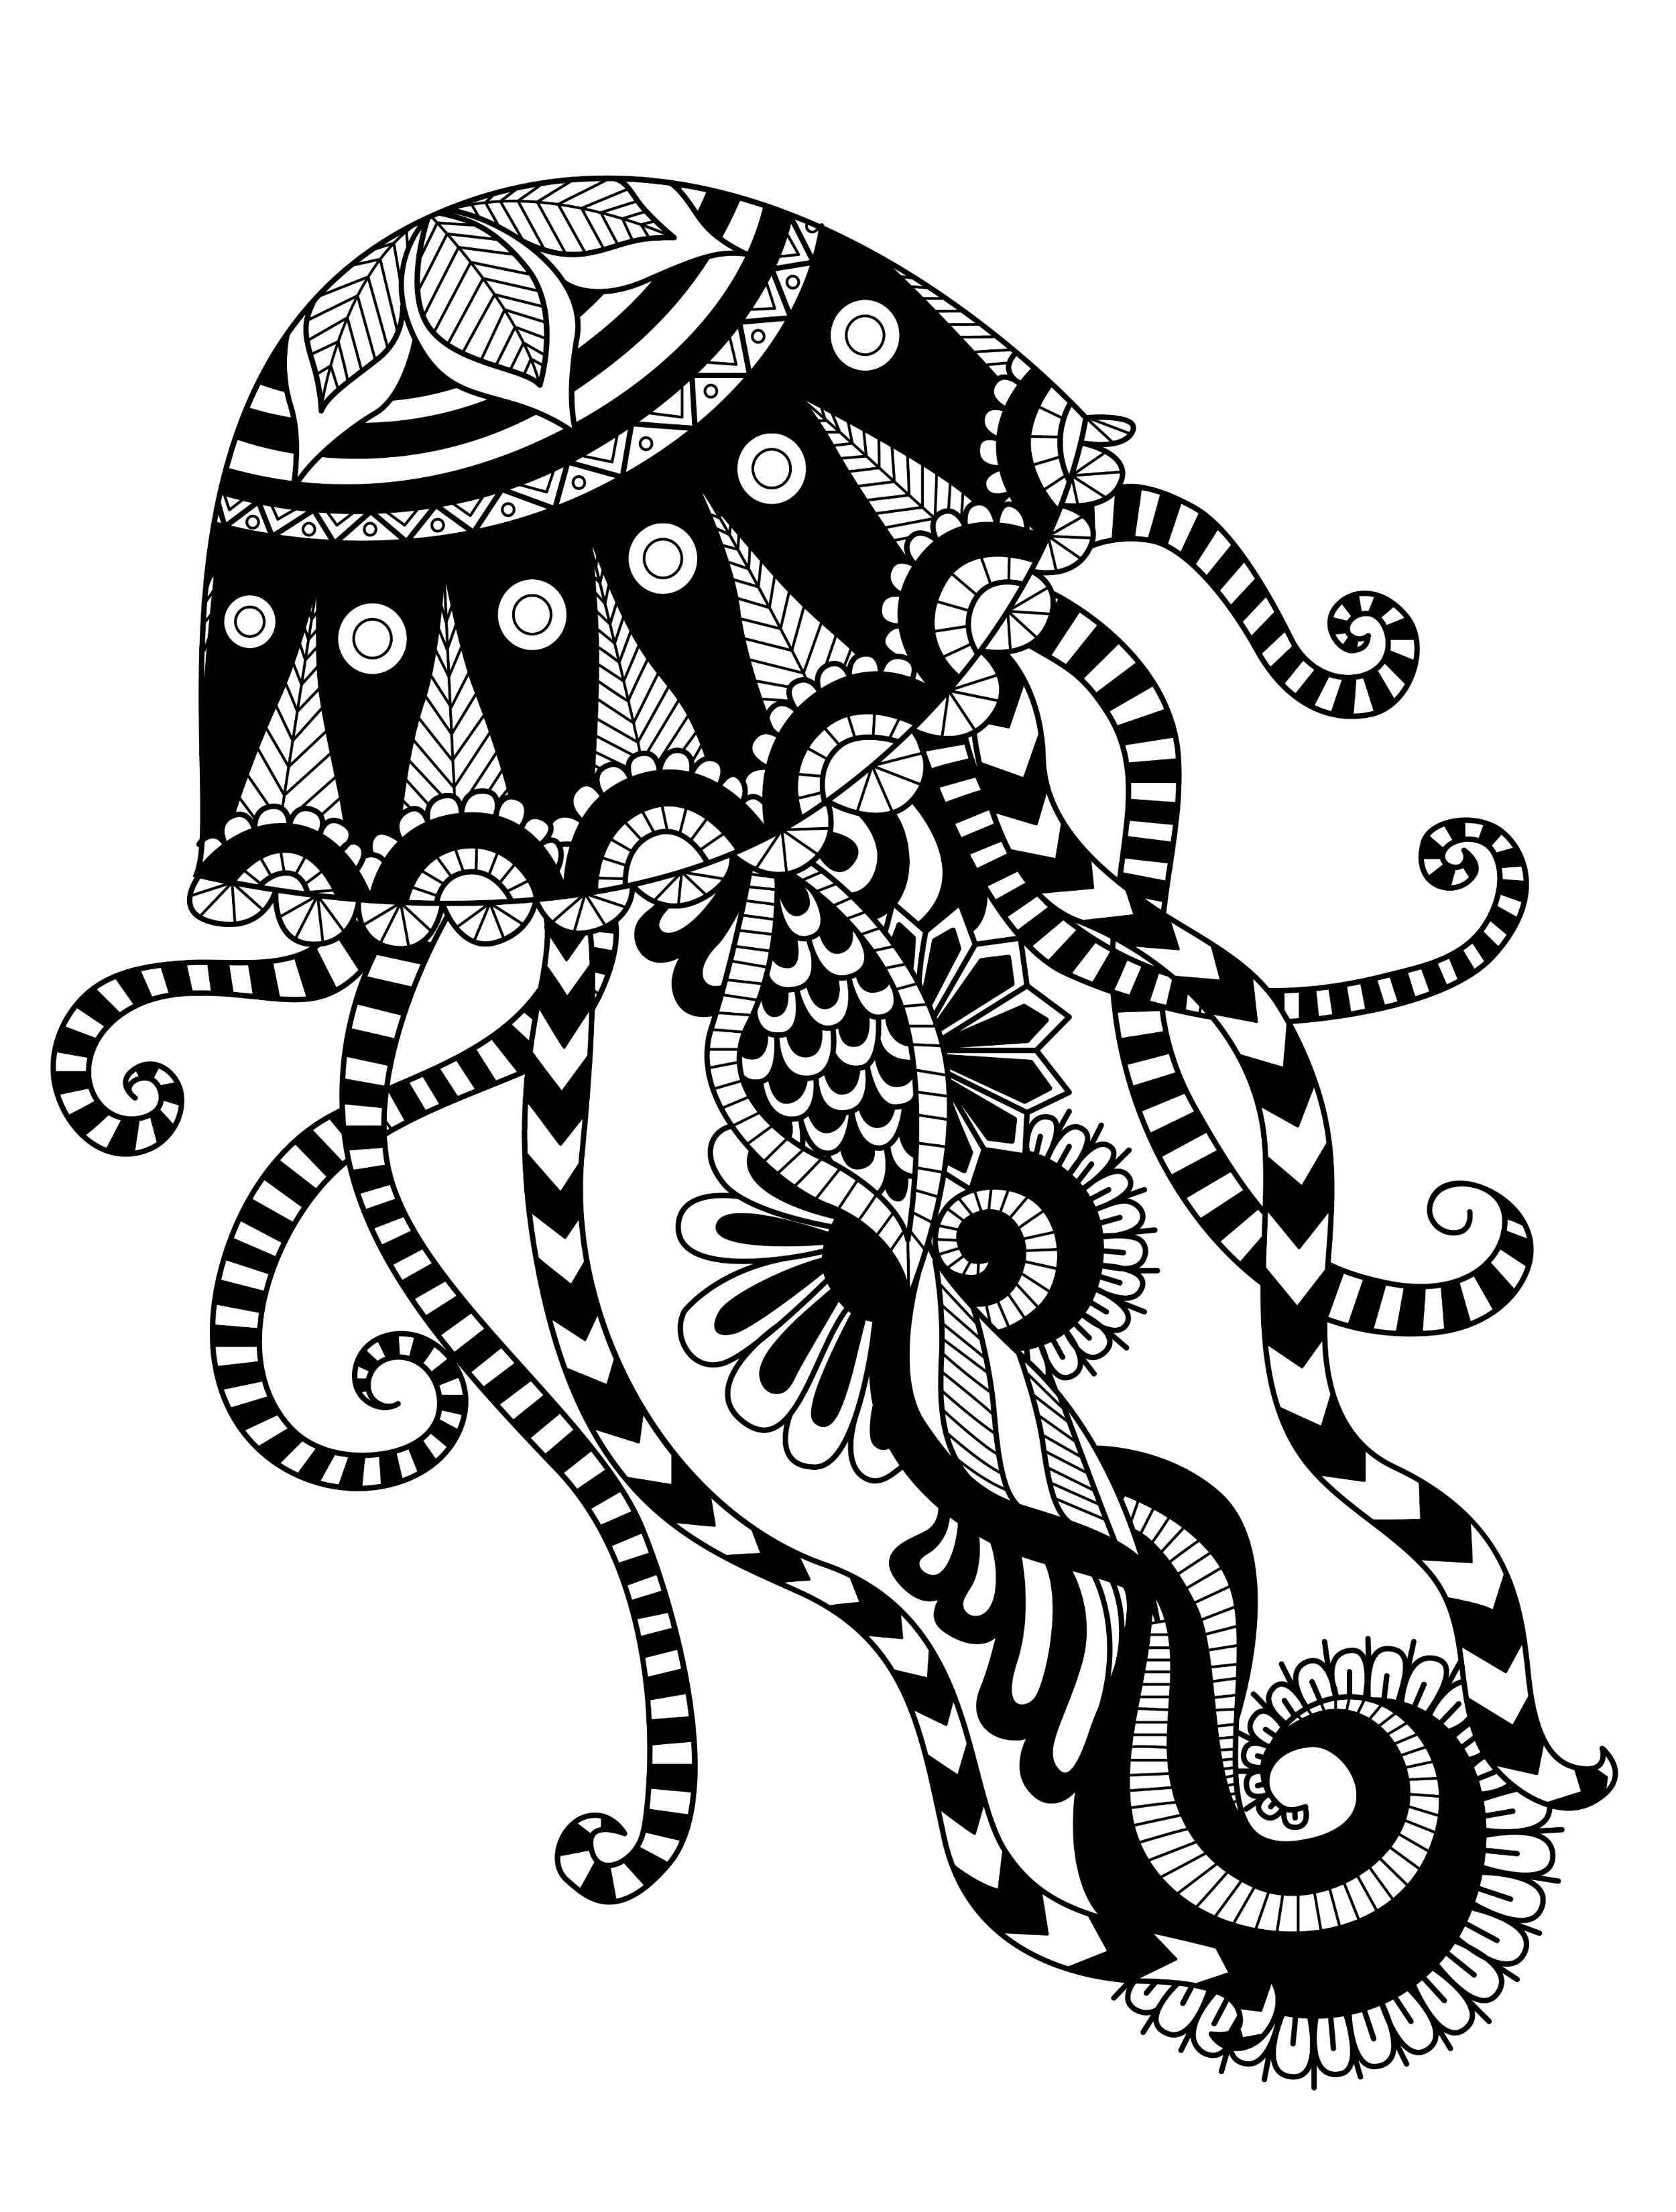 23 free printable insect animal adult coloring pages page 9 of - Jellyfish Coloring Pages